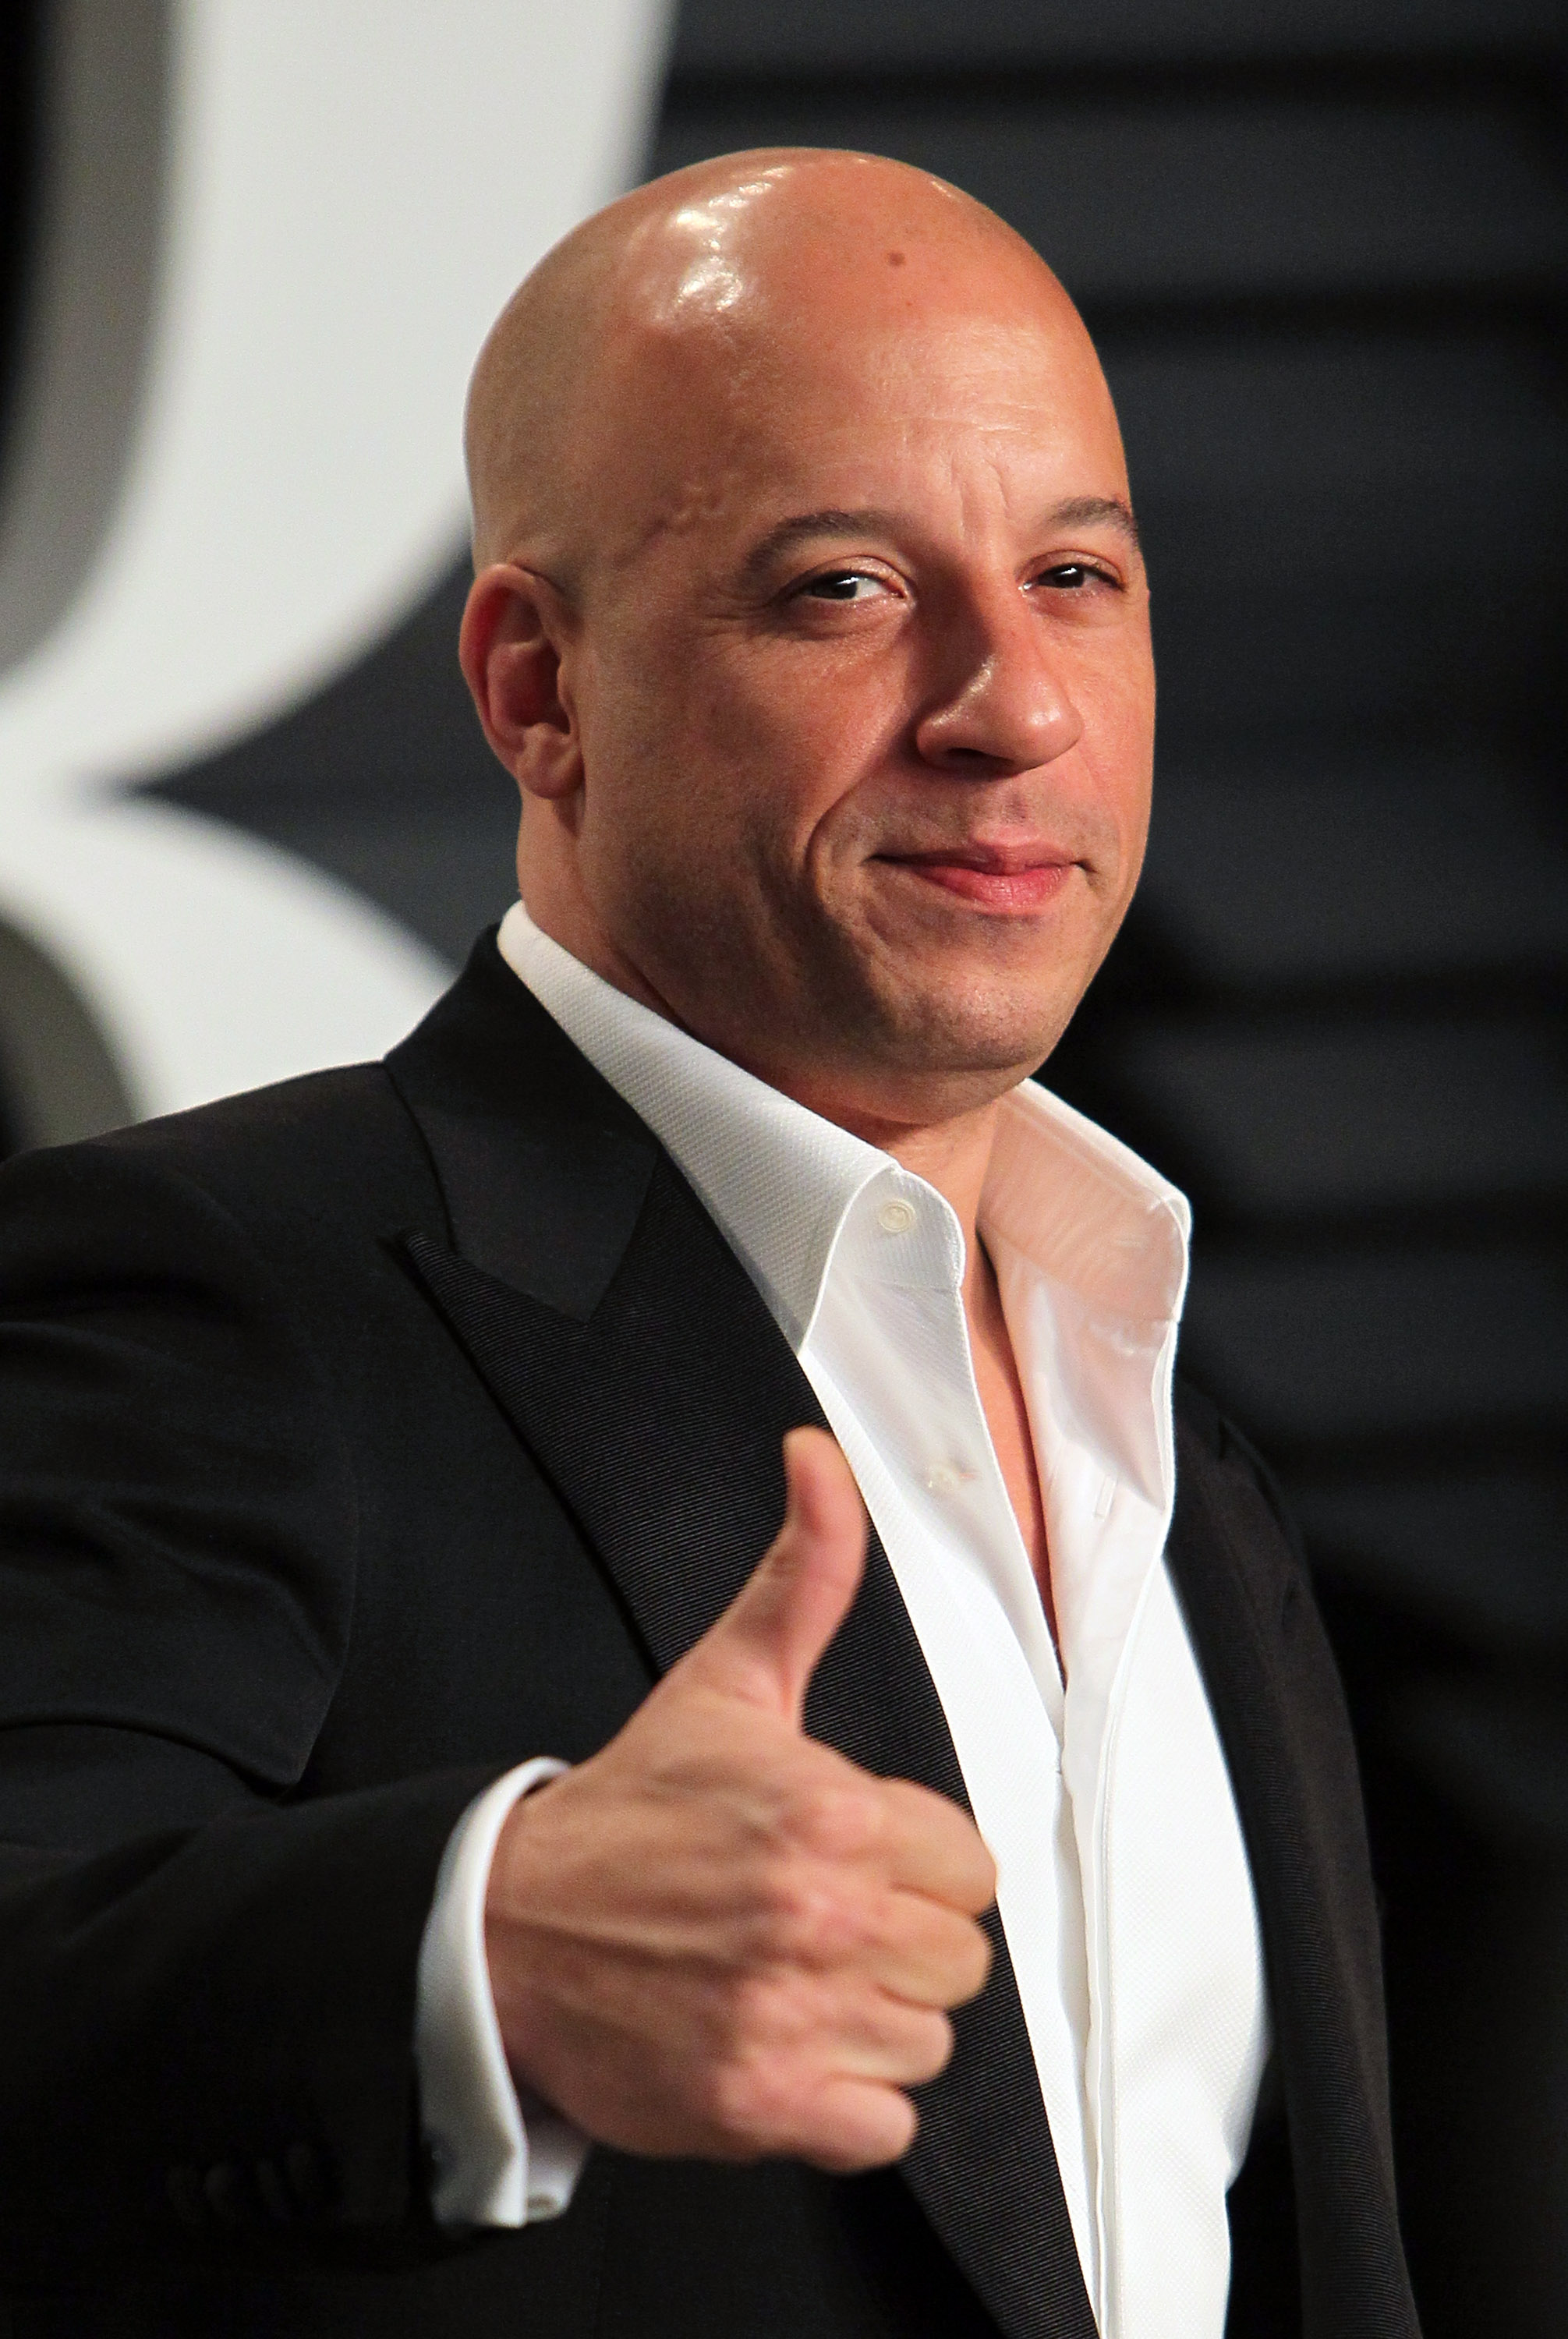 Actor Vin Diesel attends the 2015 Vanity Fair Oscar Party hosted by Graydon Carter at the Wallis Annenberg Center for the Performing Arts on Feb. 22, 2015 in Beverly Hills.